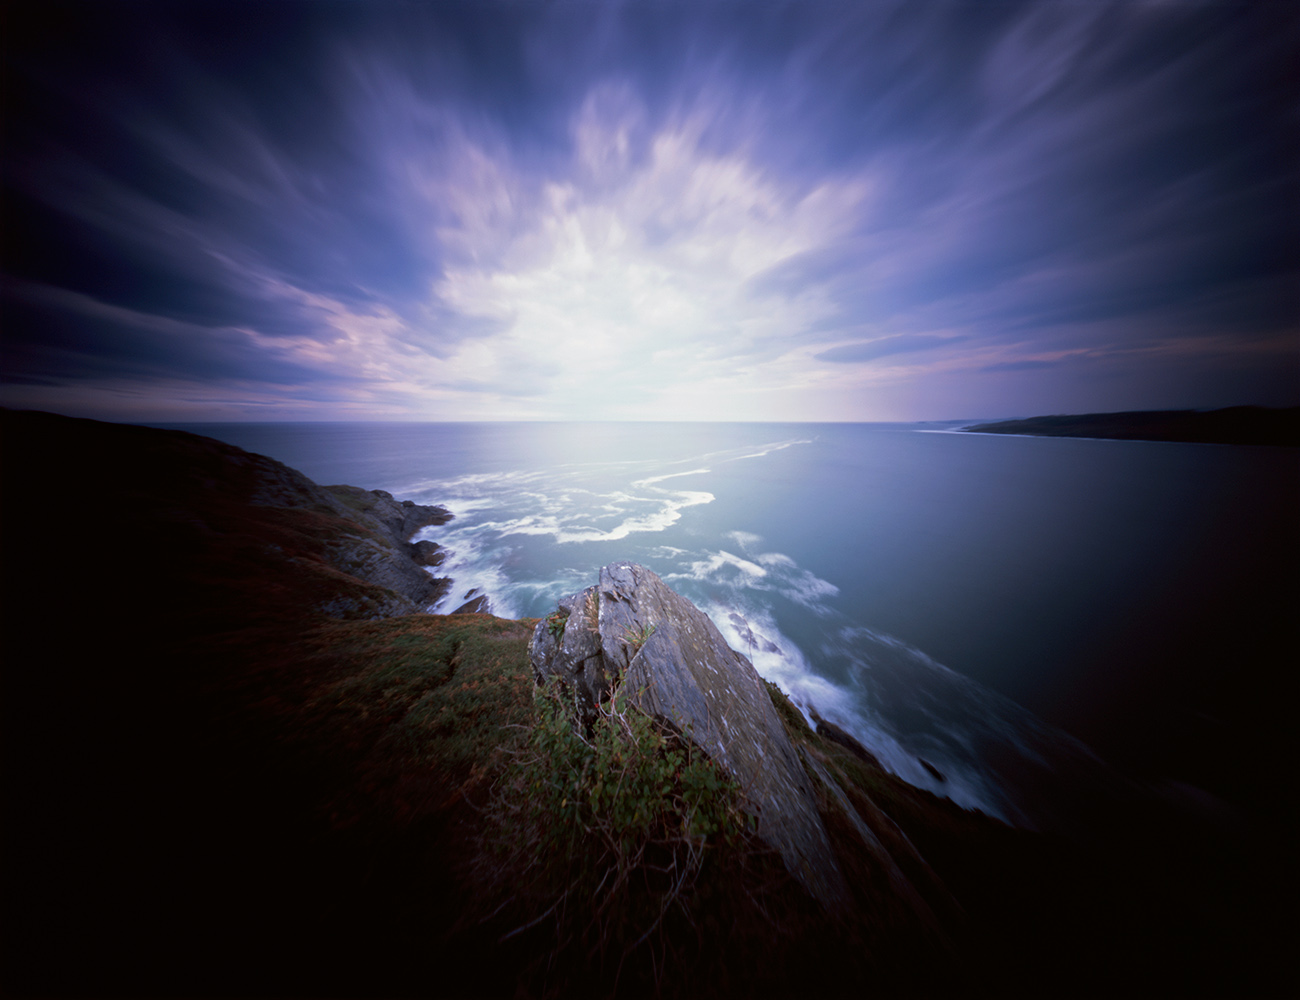 Norte - FERNANDO PUCHE,  NATURE  PHOTOGRAPHY  BEYOND  OBVIOUS